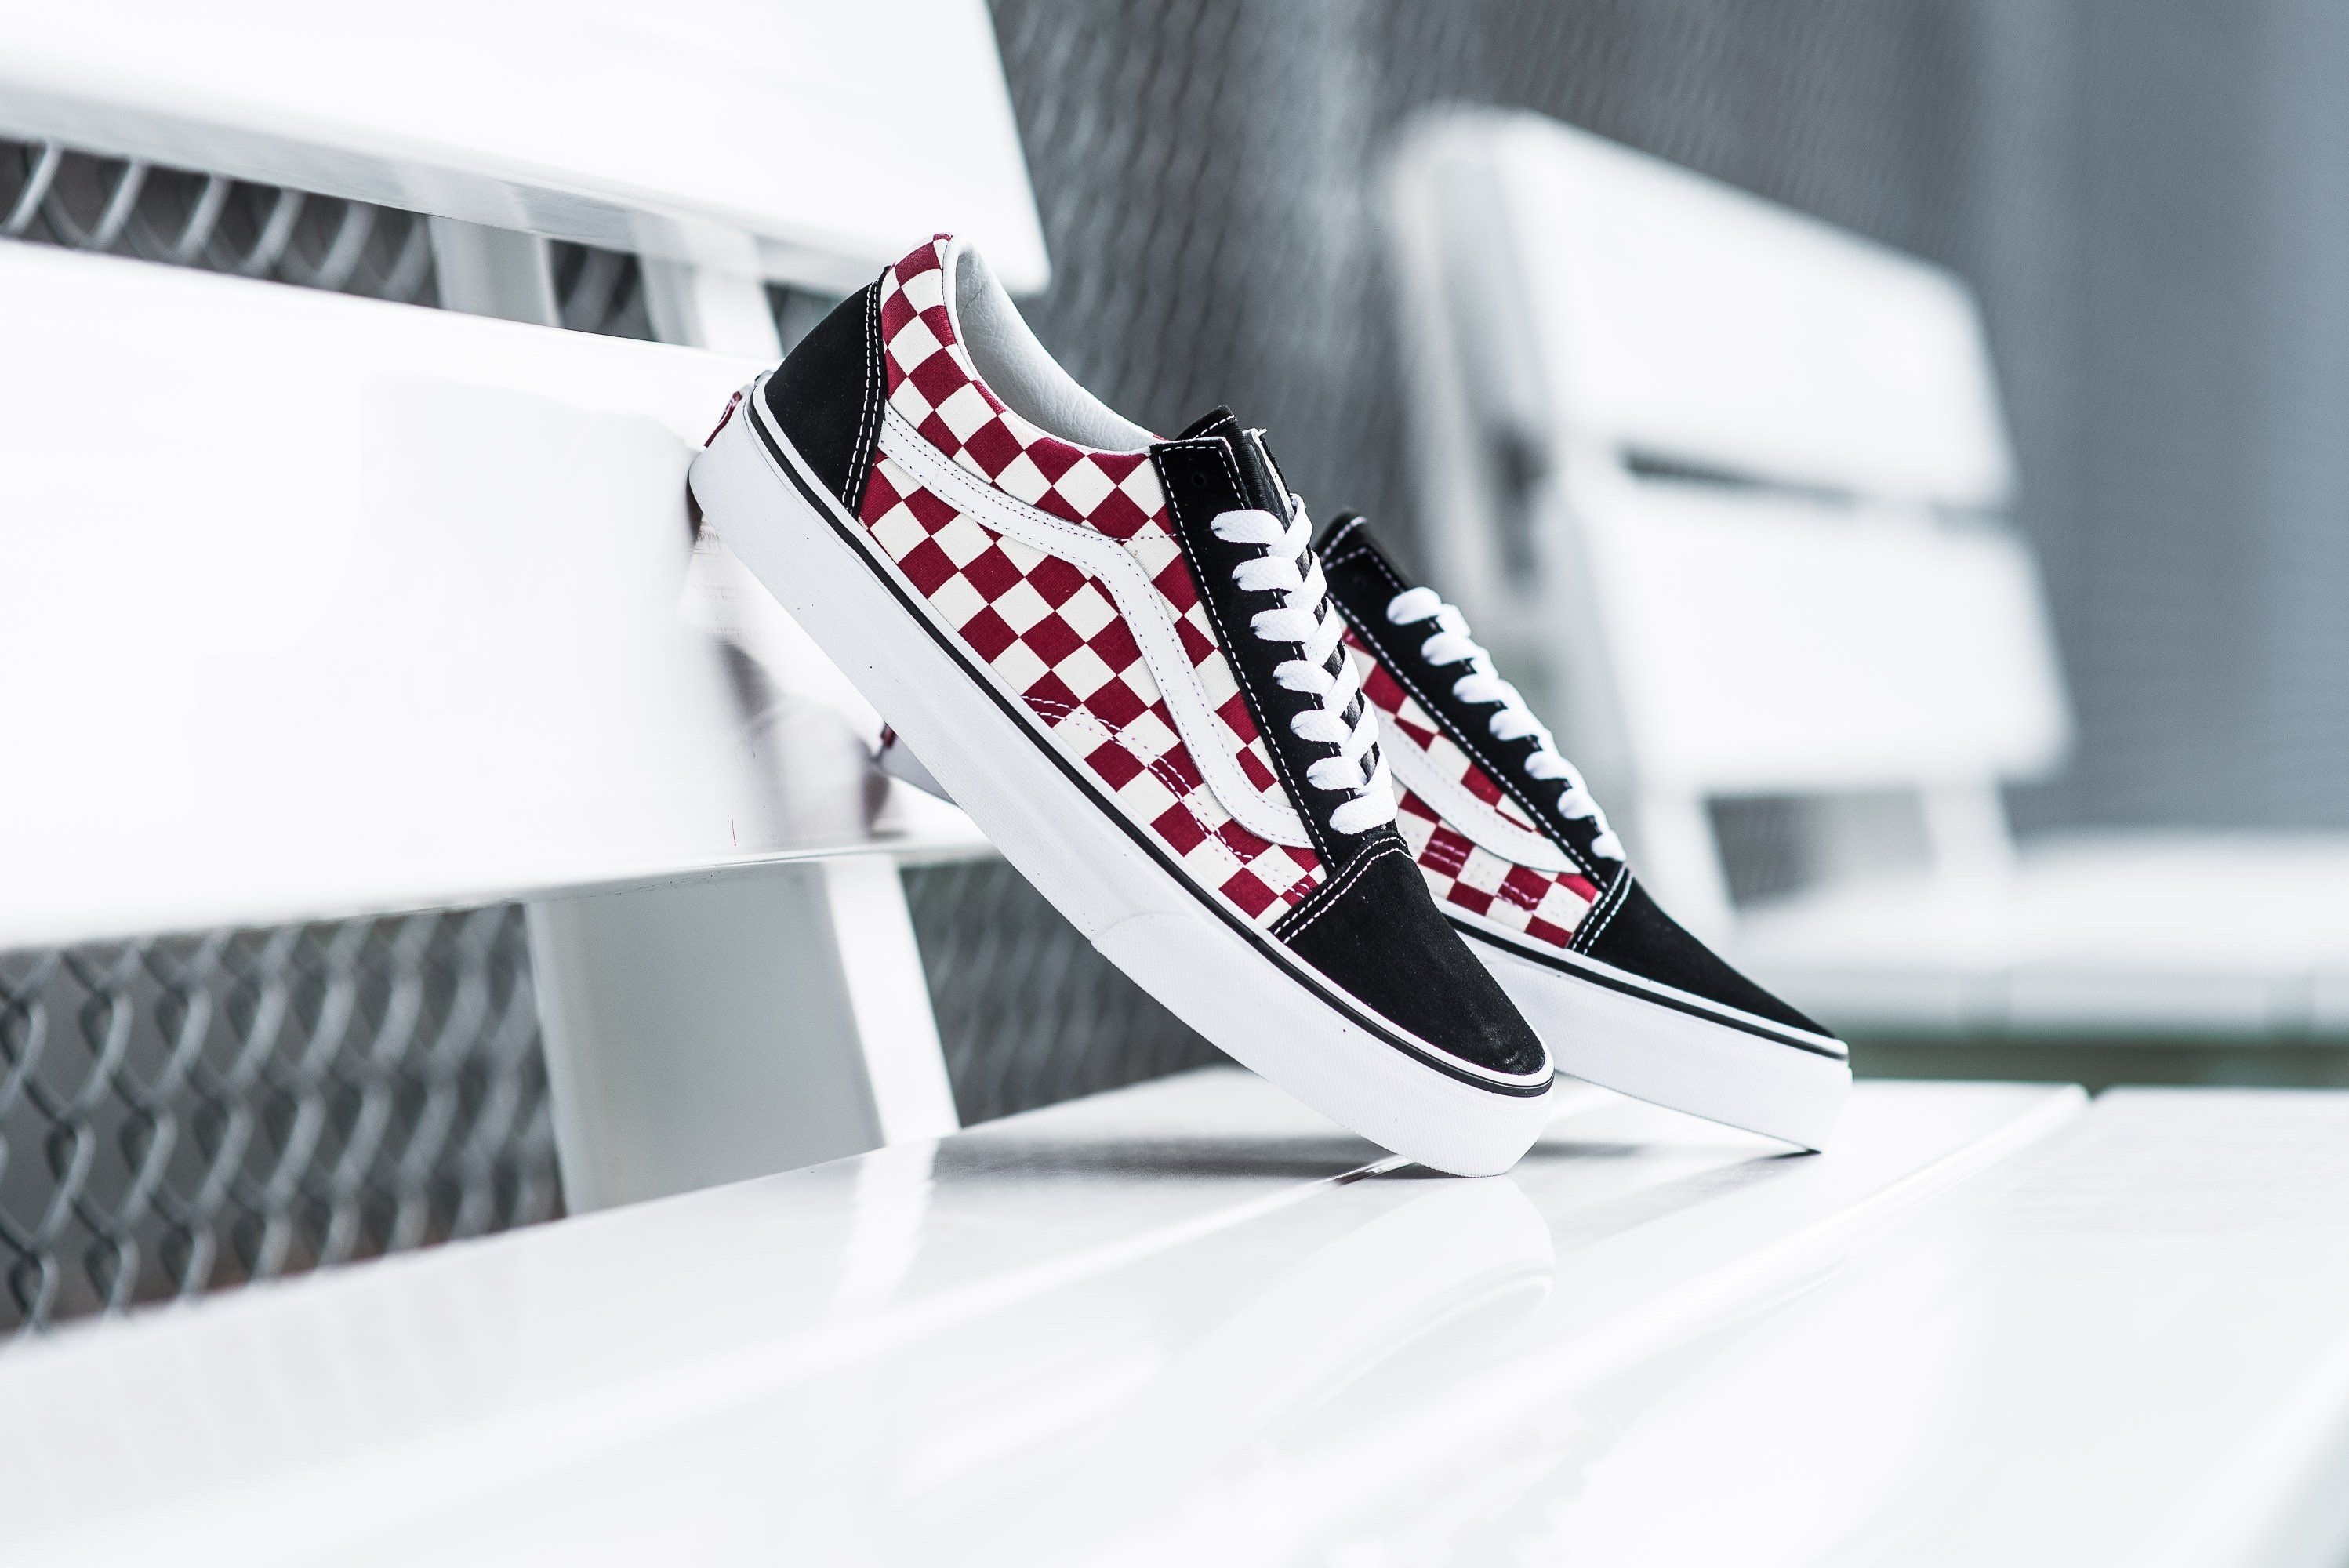 Vans Old Skool Checkerboard Black White Red From Sneaker Politics Vans The Checkerboard Old Skool The Van Black White Red Vans Old Skool Vans Checkerboard